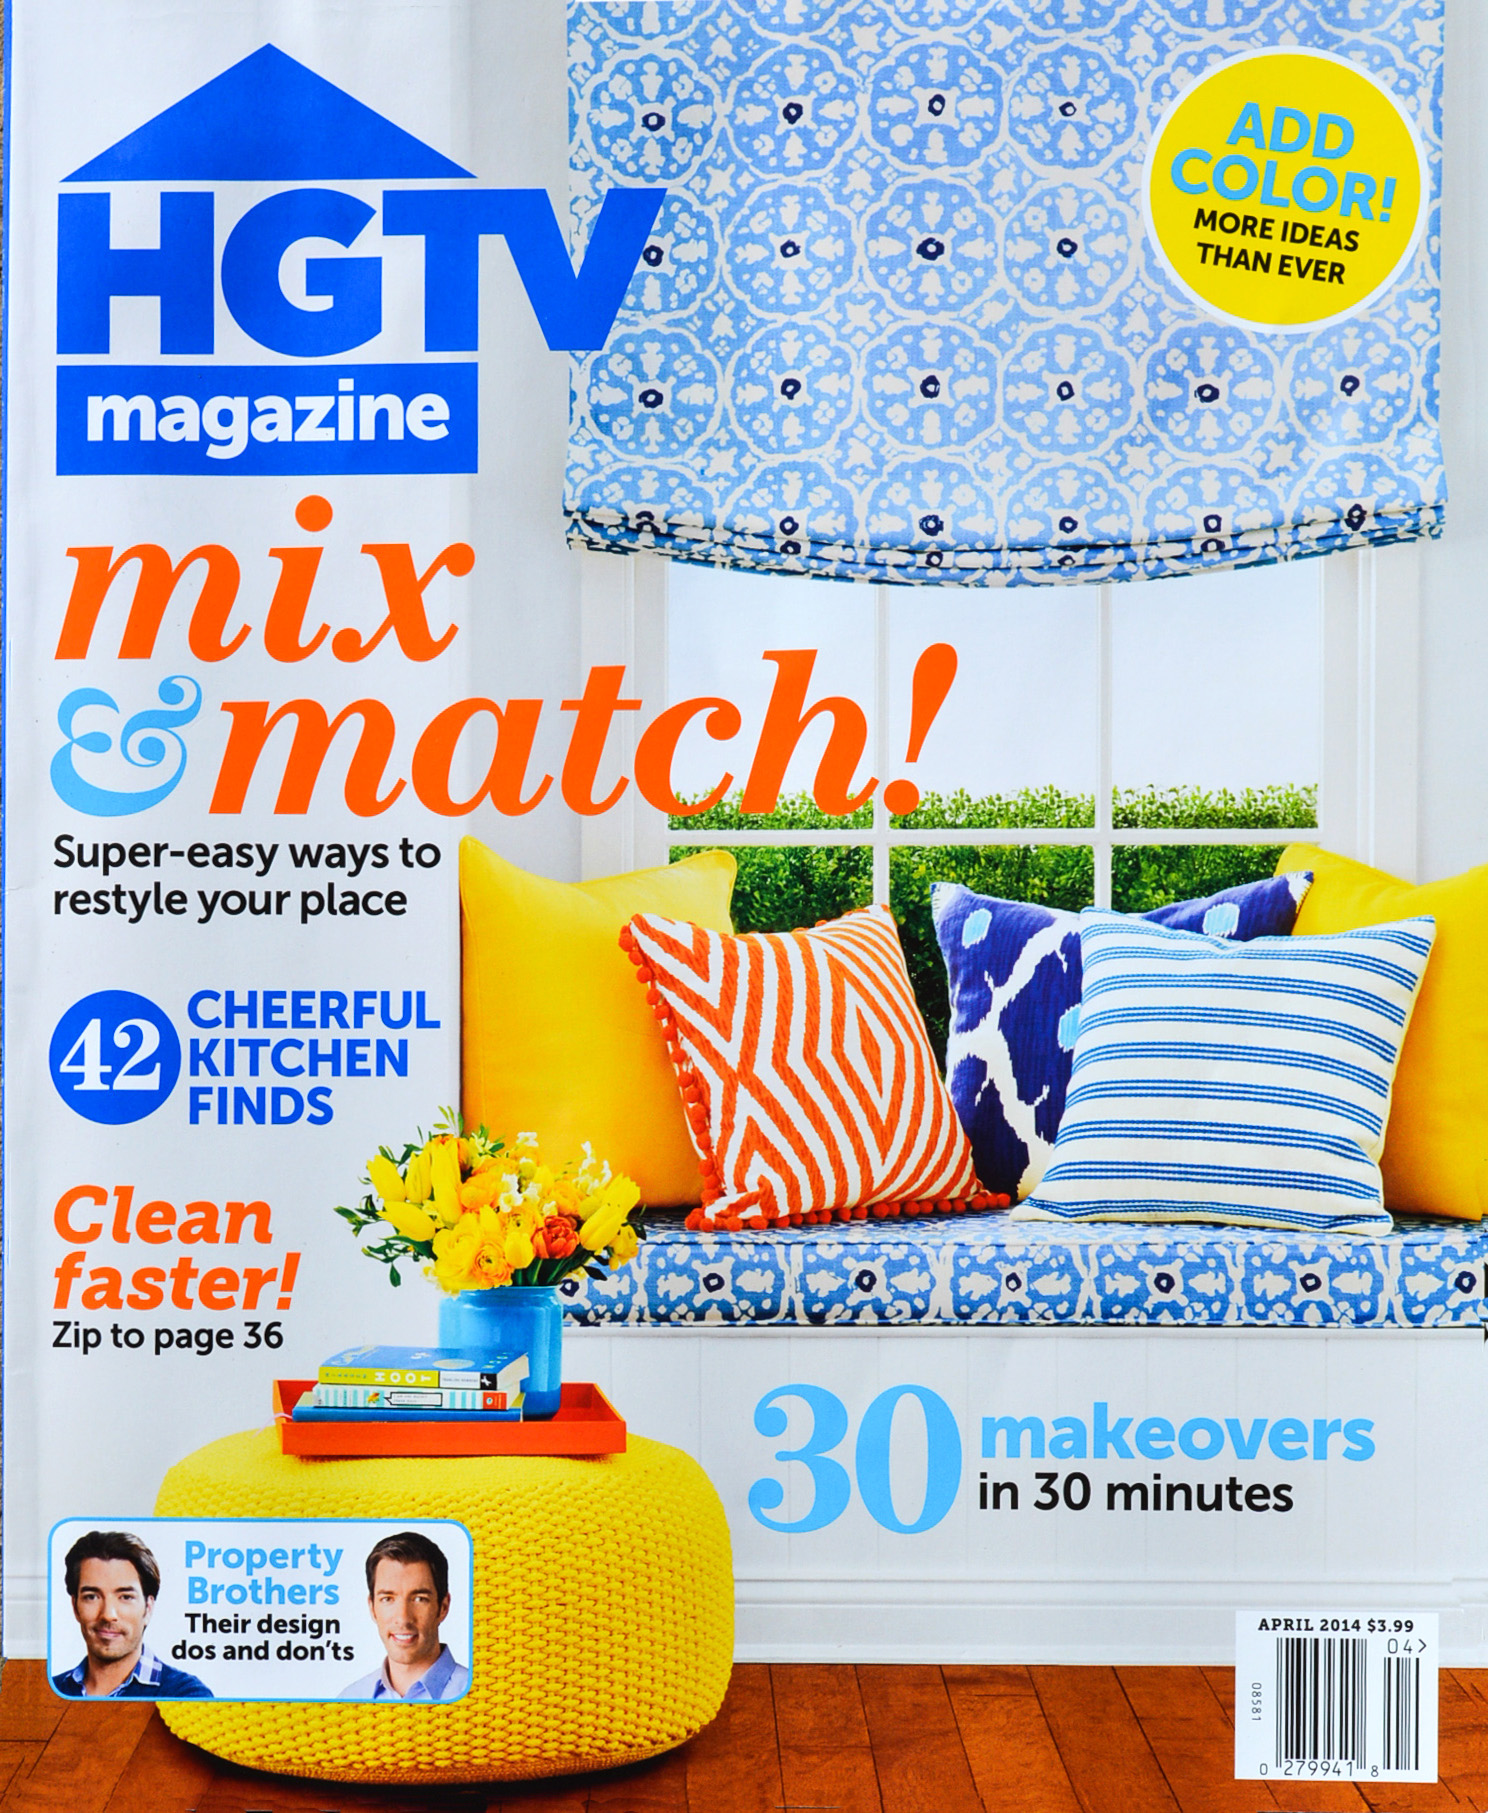 HGTV Magazine, April, 2014: Cover